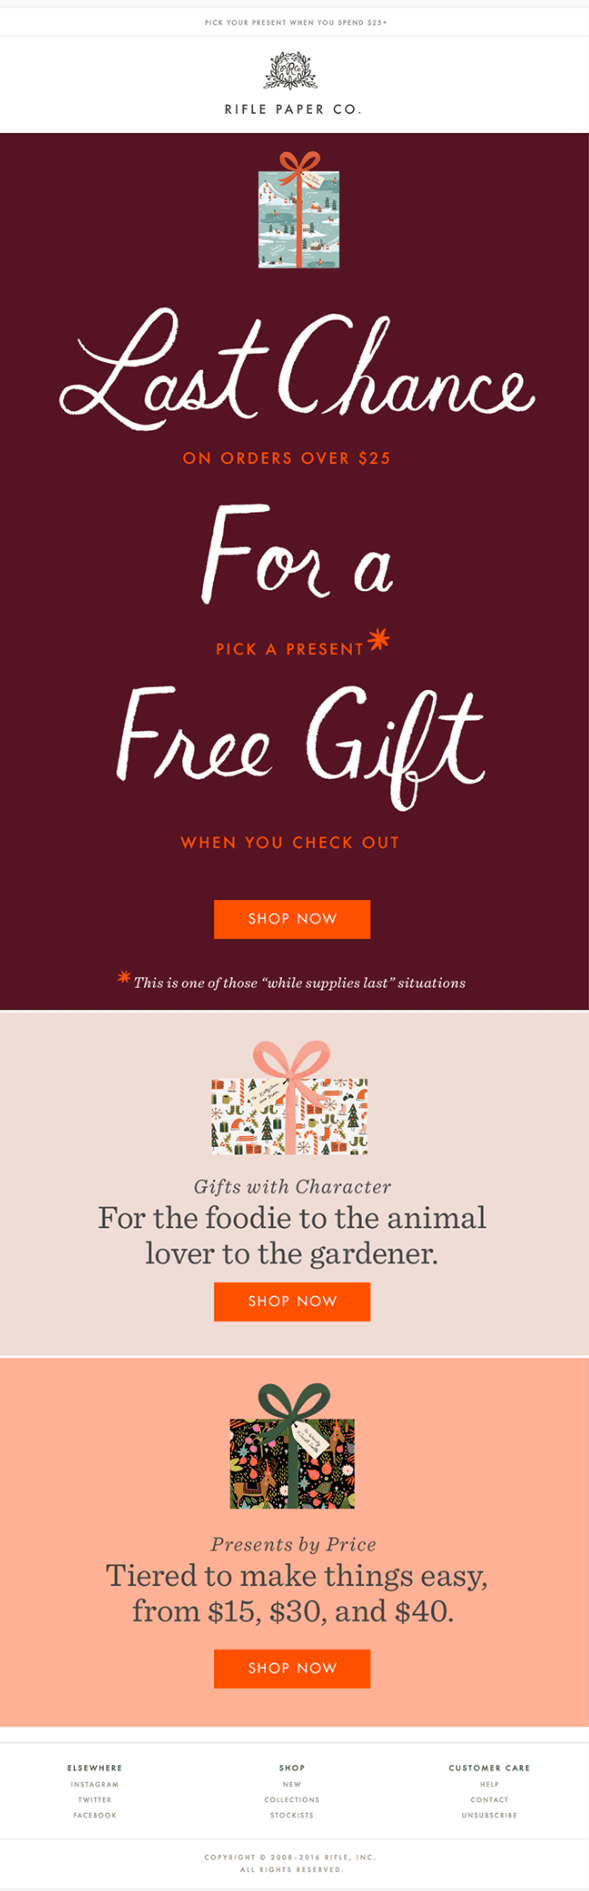 Christmas email example by Rifle Paper Co with a time sensitive offer